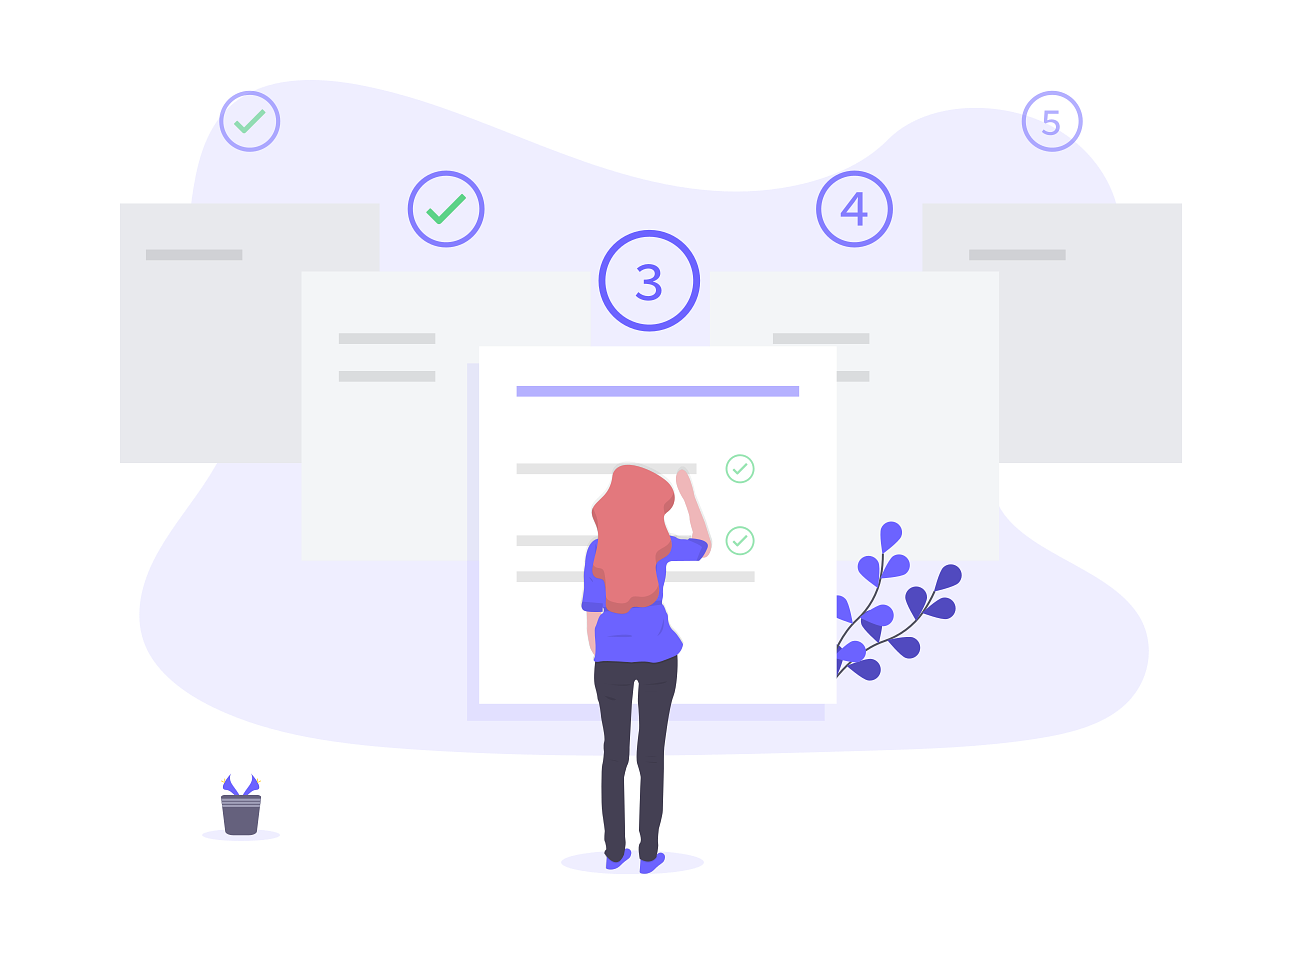 Compliance - So, you're managing hundreds or thousands of workers and you're struggling to keep track of all their documentation and working hour restrictions? Don't worry, our system makes easy work of managing these compliance criteria and more!